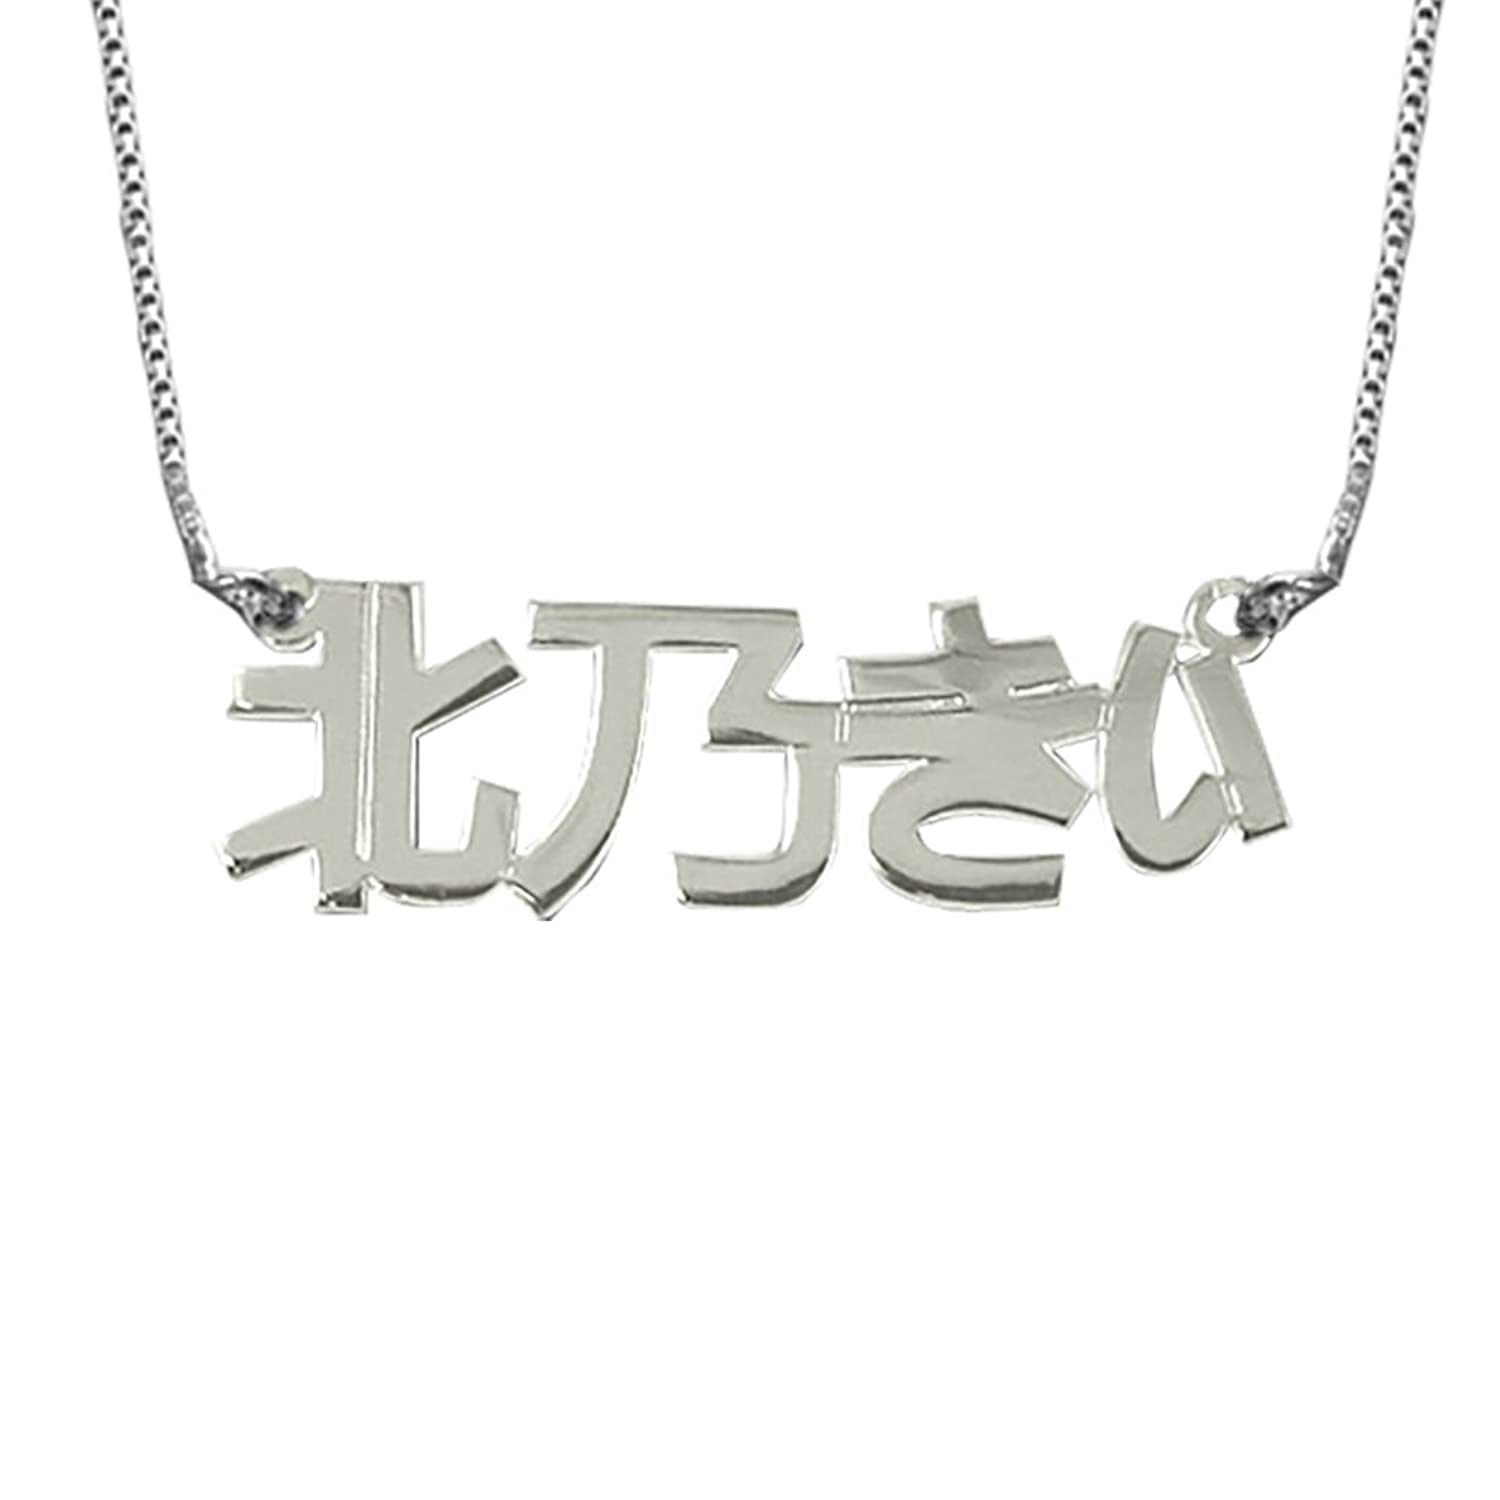 Japanese Name Necklace - Custom Made with Any Name!